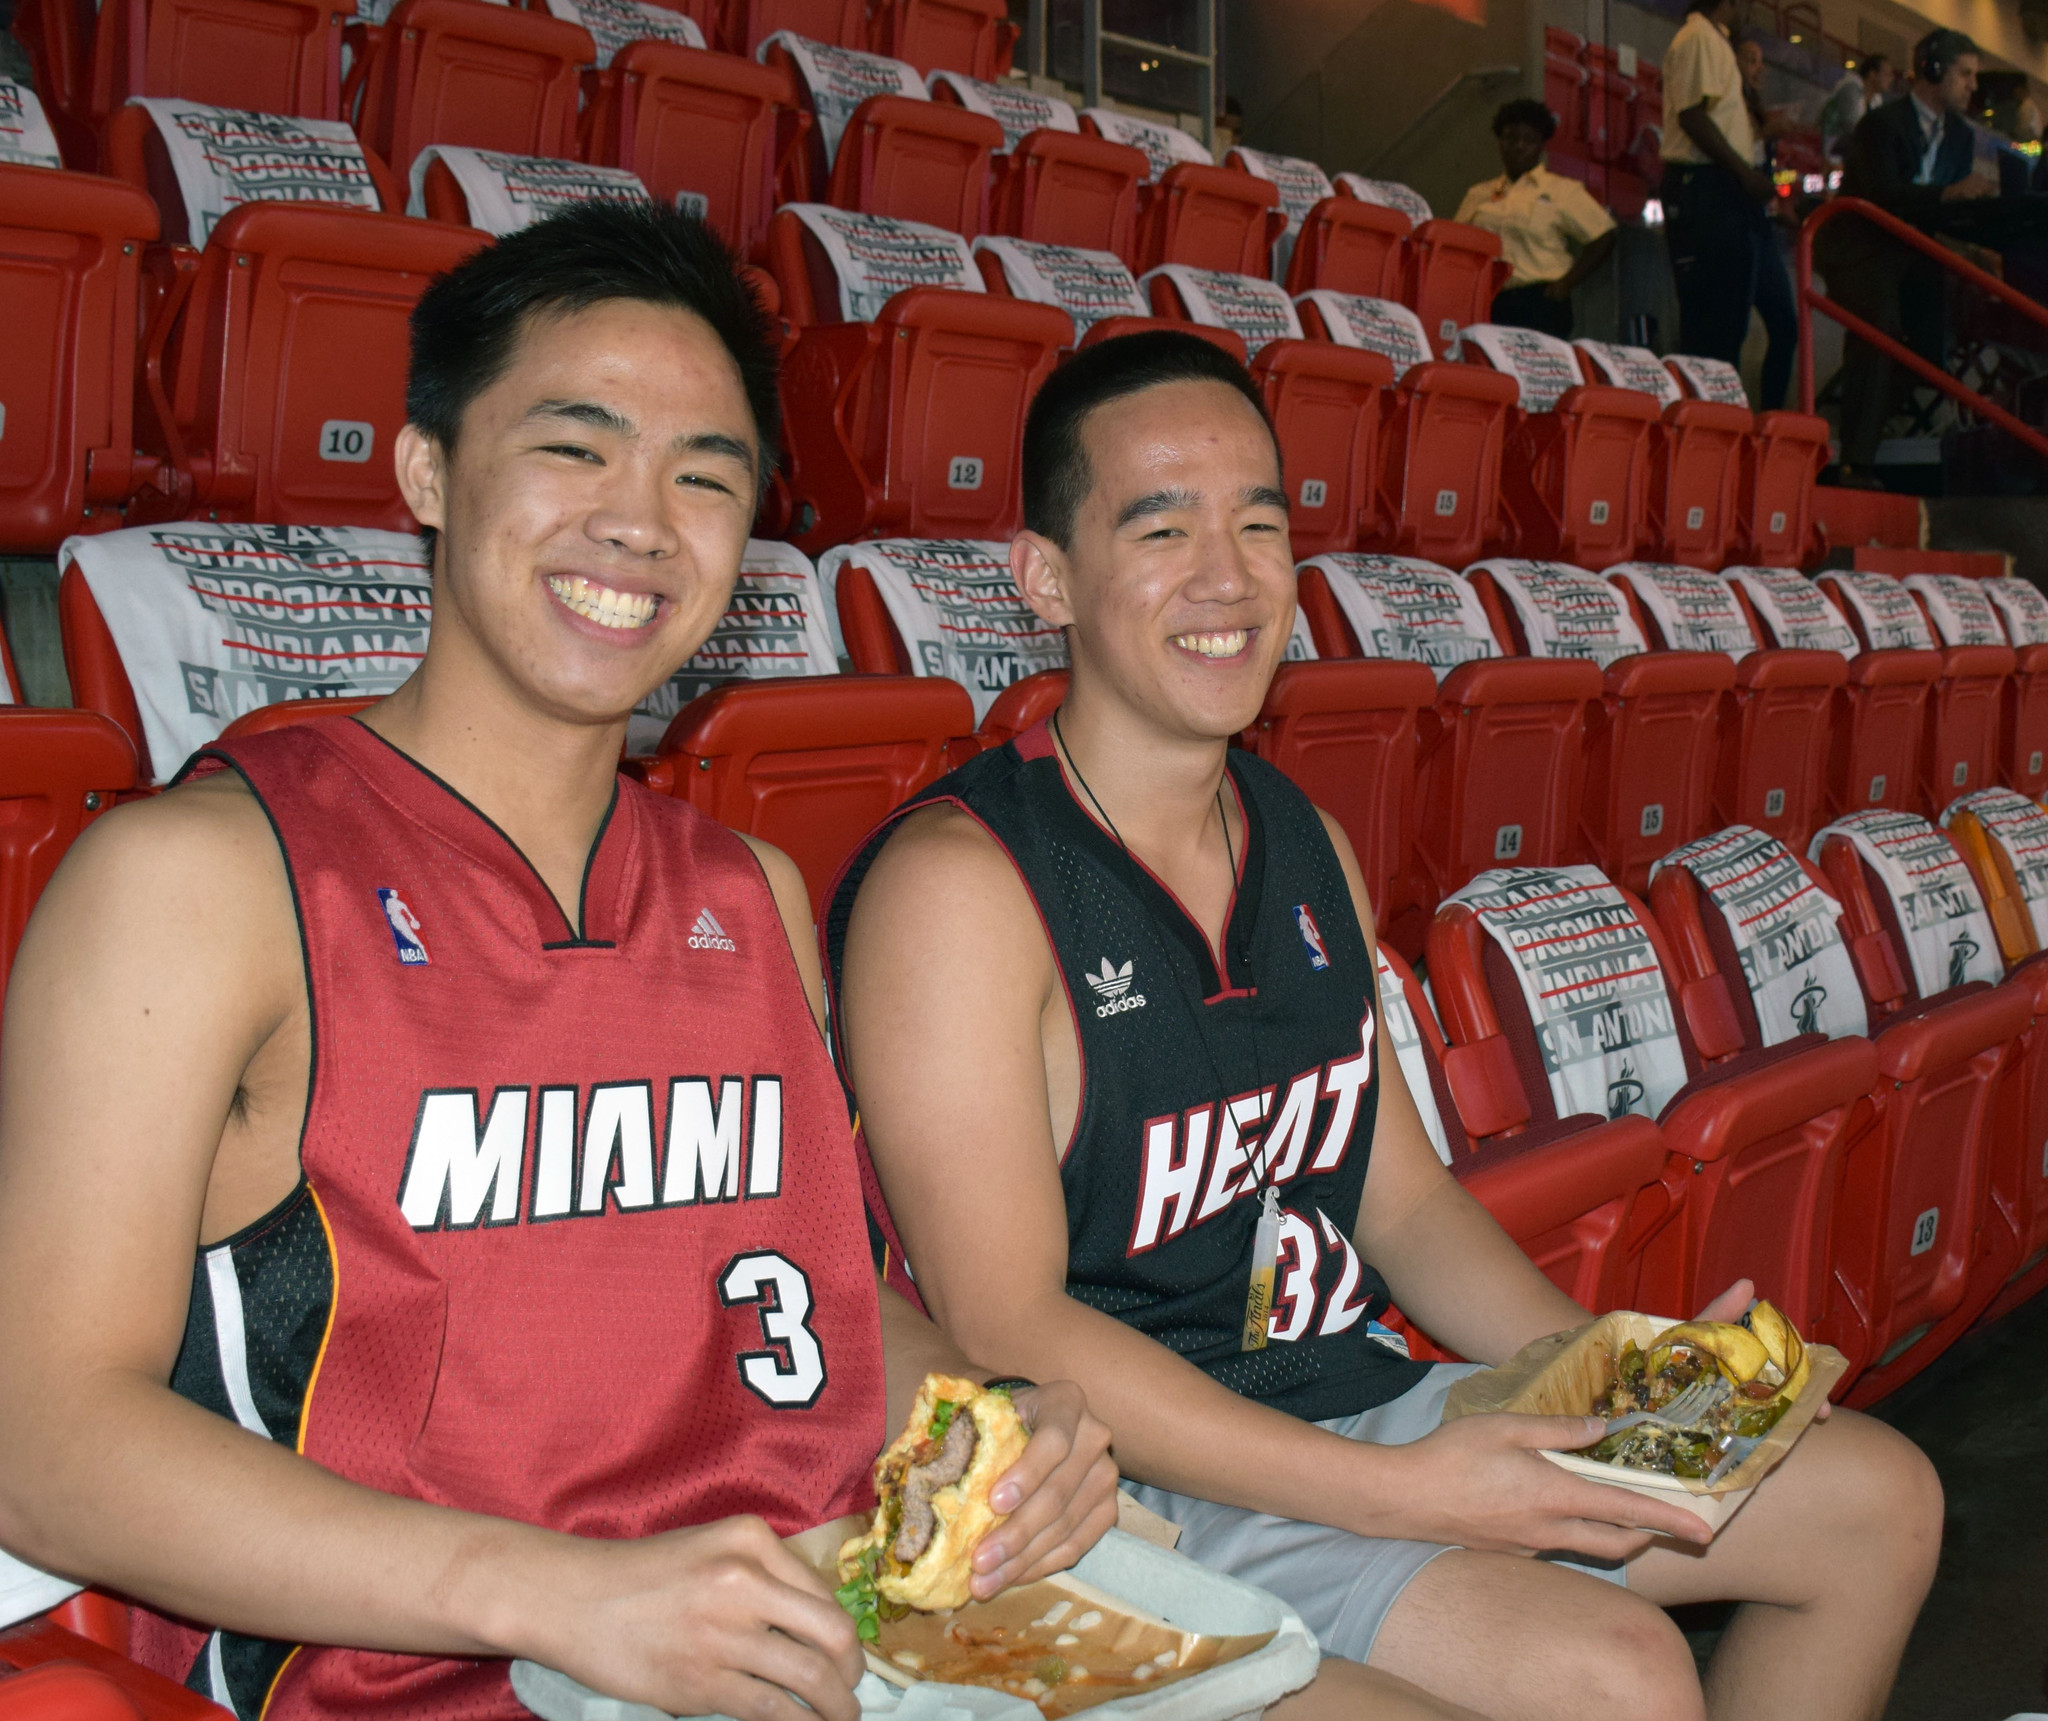 Heat fans during the NBA Finals - Heat Fans at Game 3